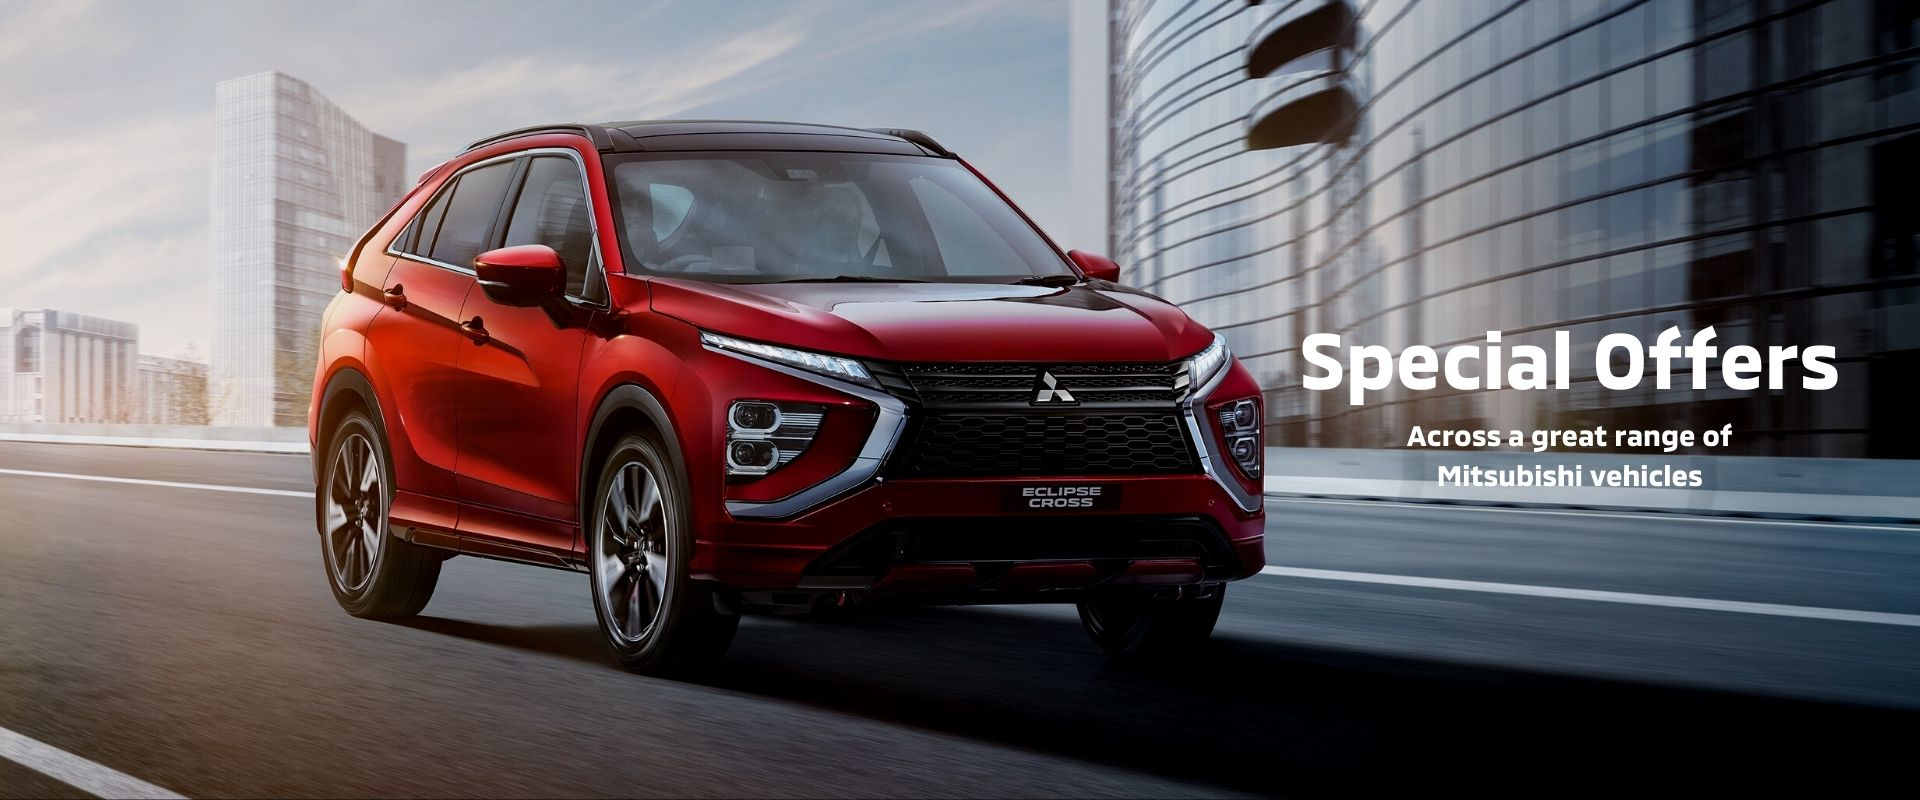 See our latest Mitsubishi Offers